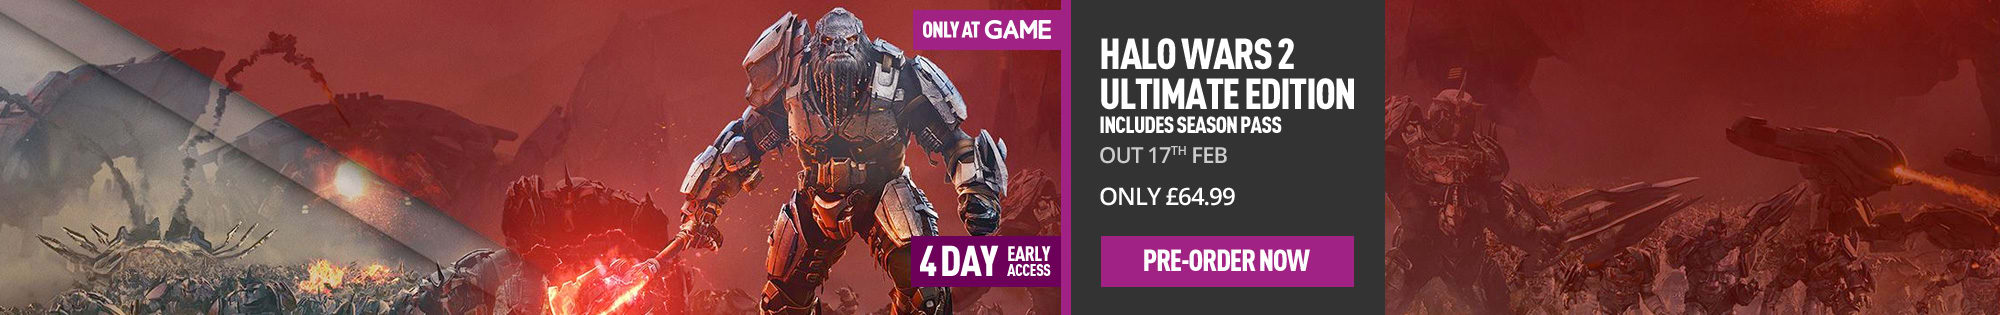 Halo Wars 2 Ultimate Edition - Only at GAME for Xbox One - Pre-order Now at GAME.co.uk